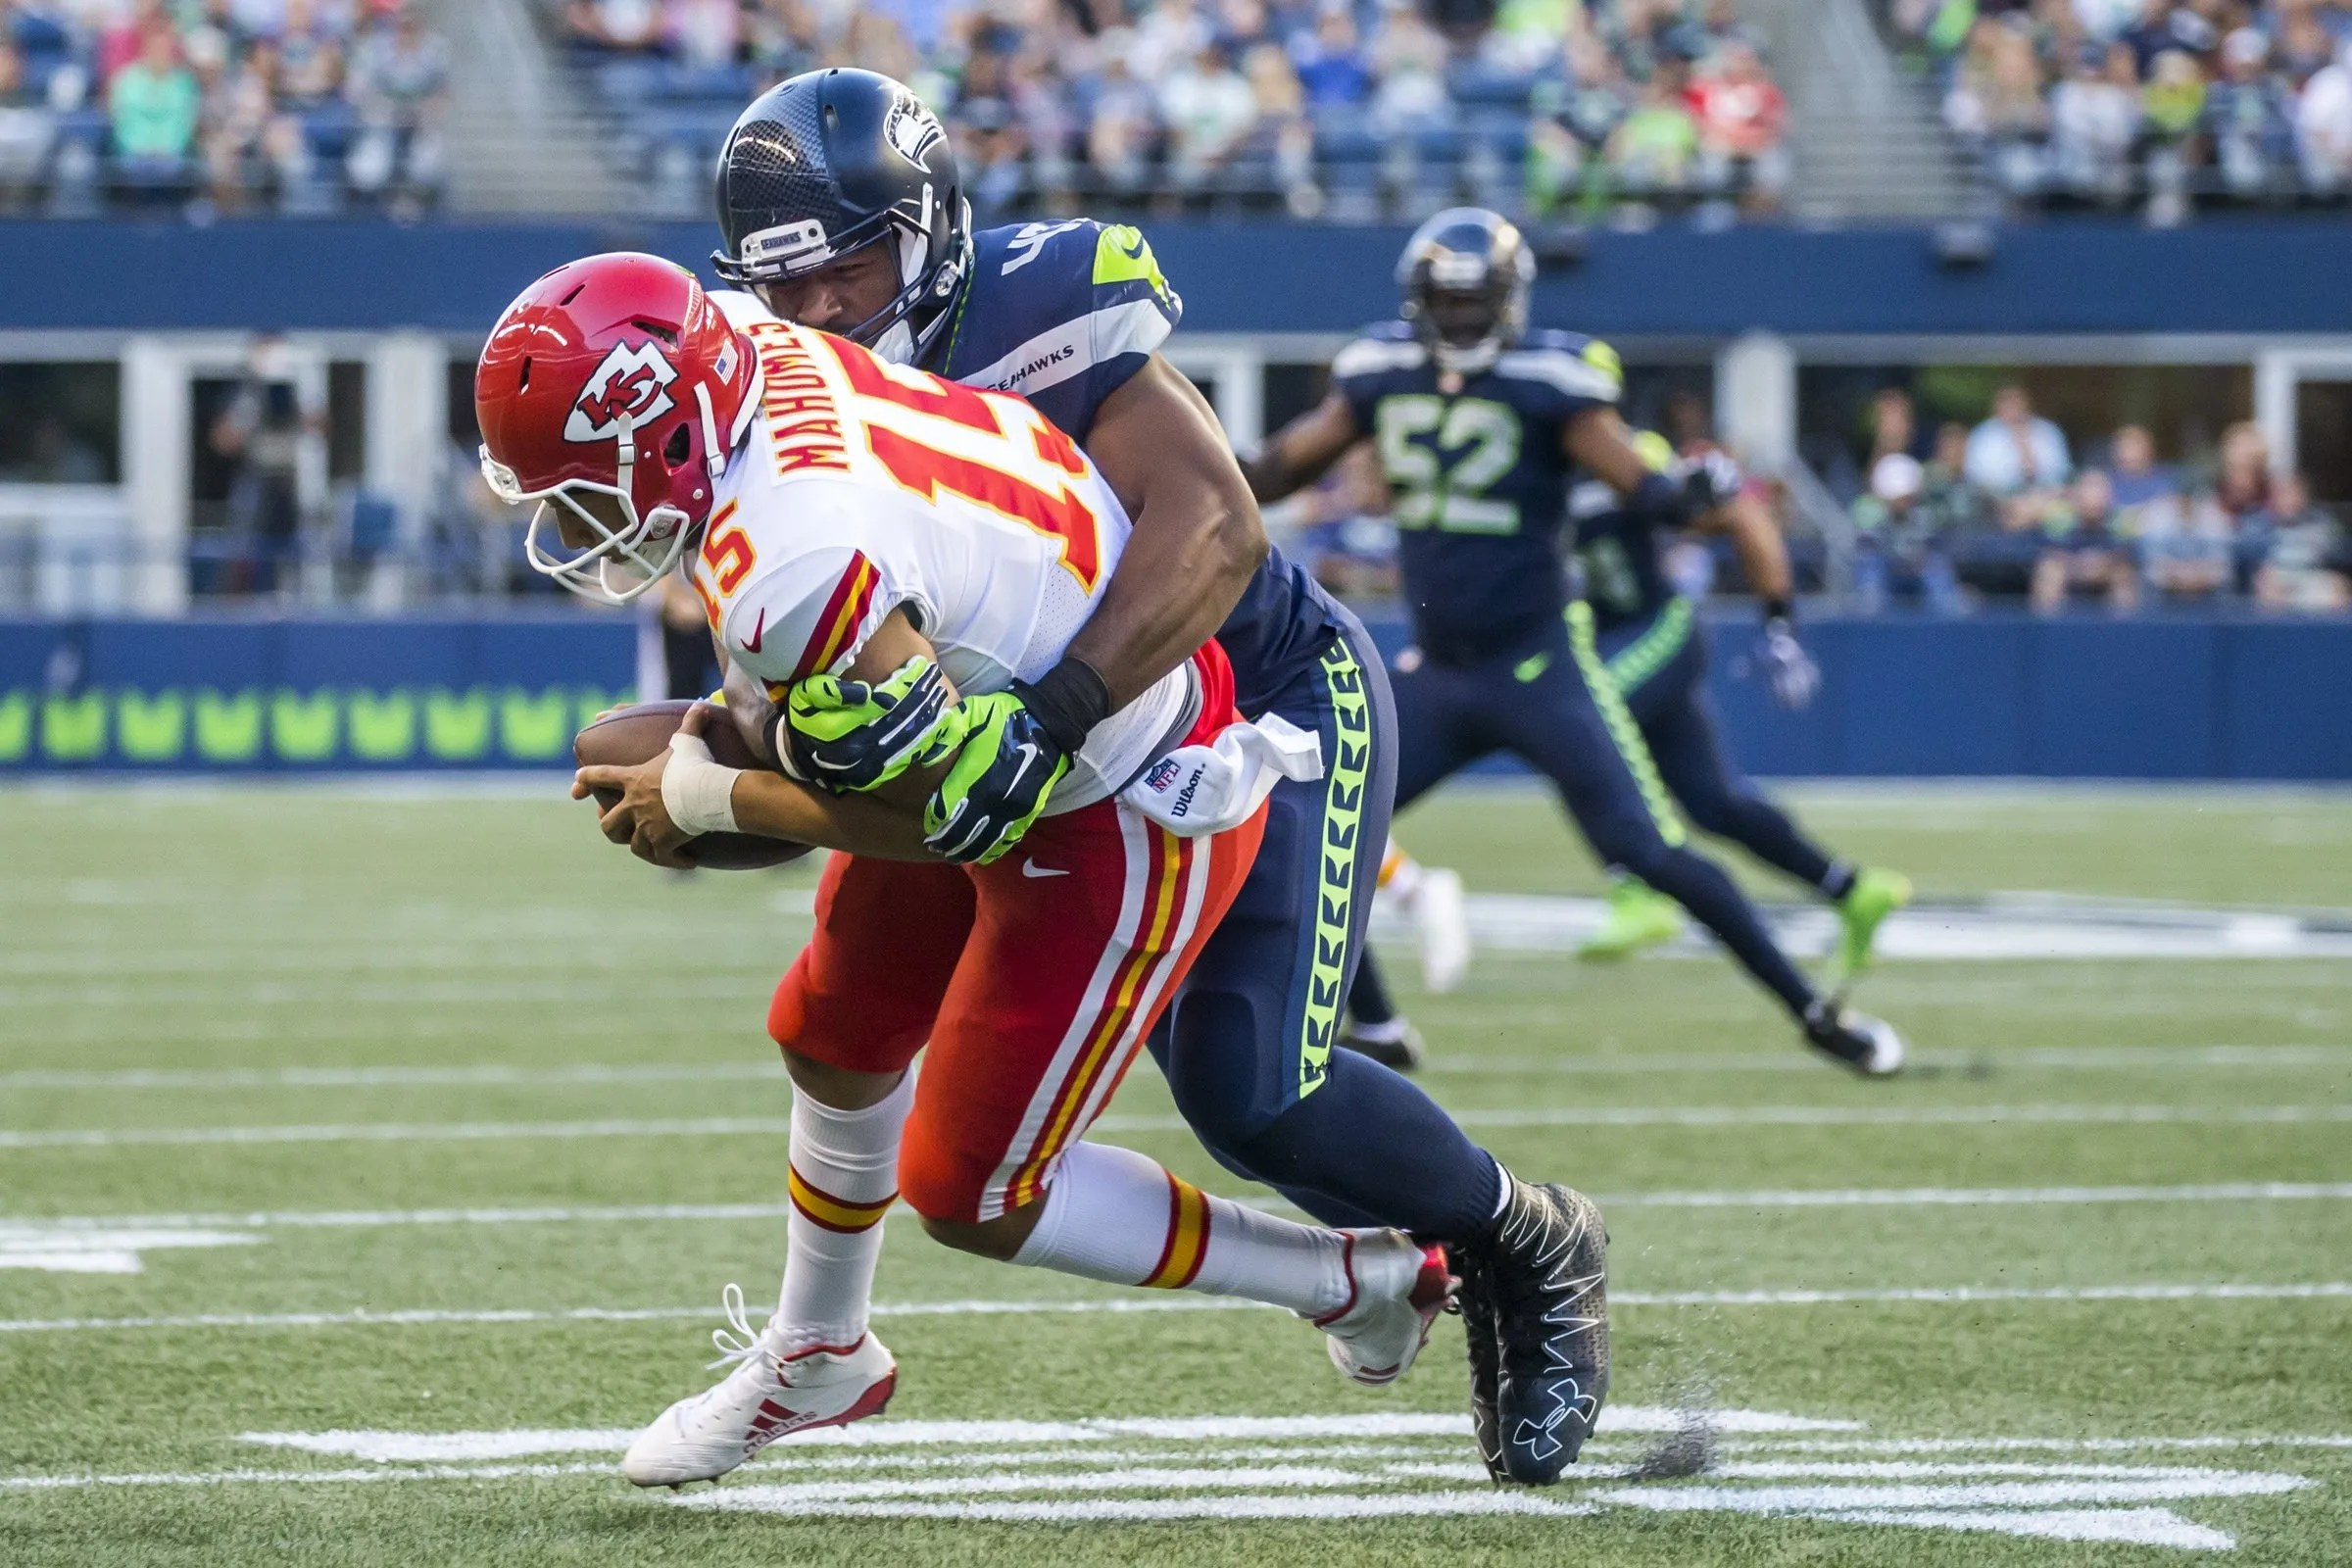 Full Coverage Seahawks Beat Chiefs 26 13 To Stay Undefeated In Preseason The Seattle Times